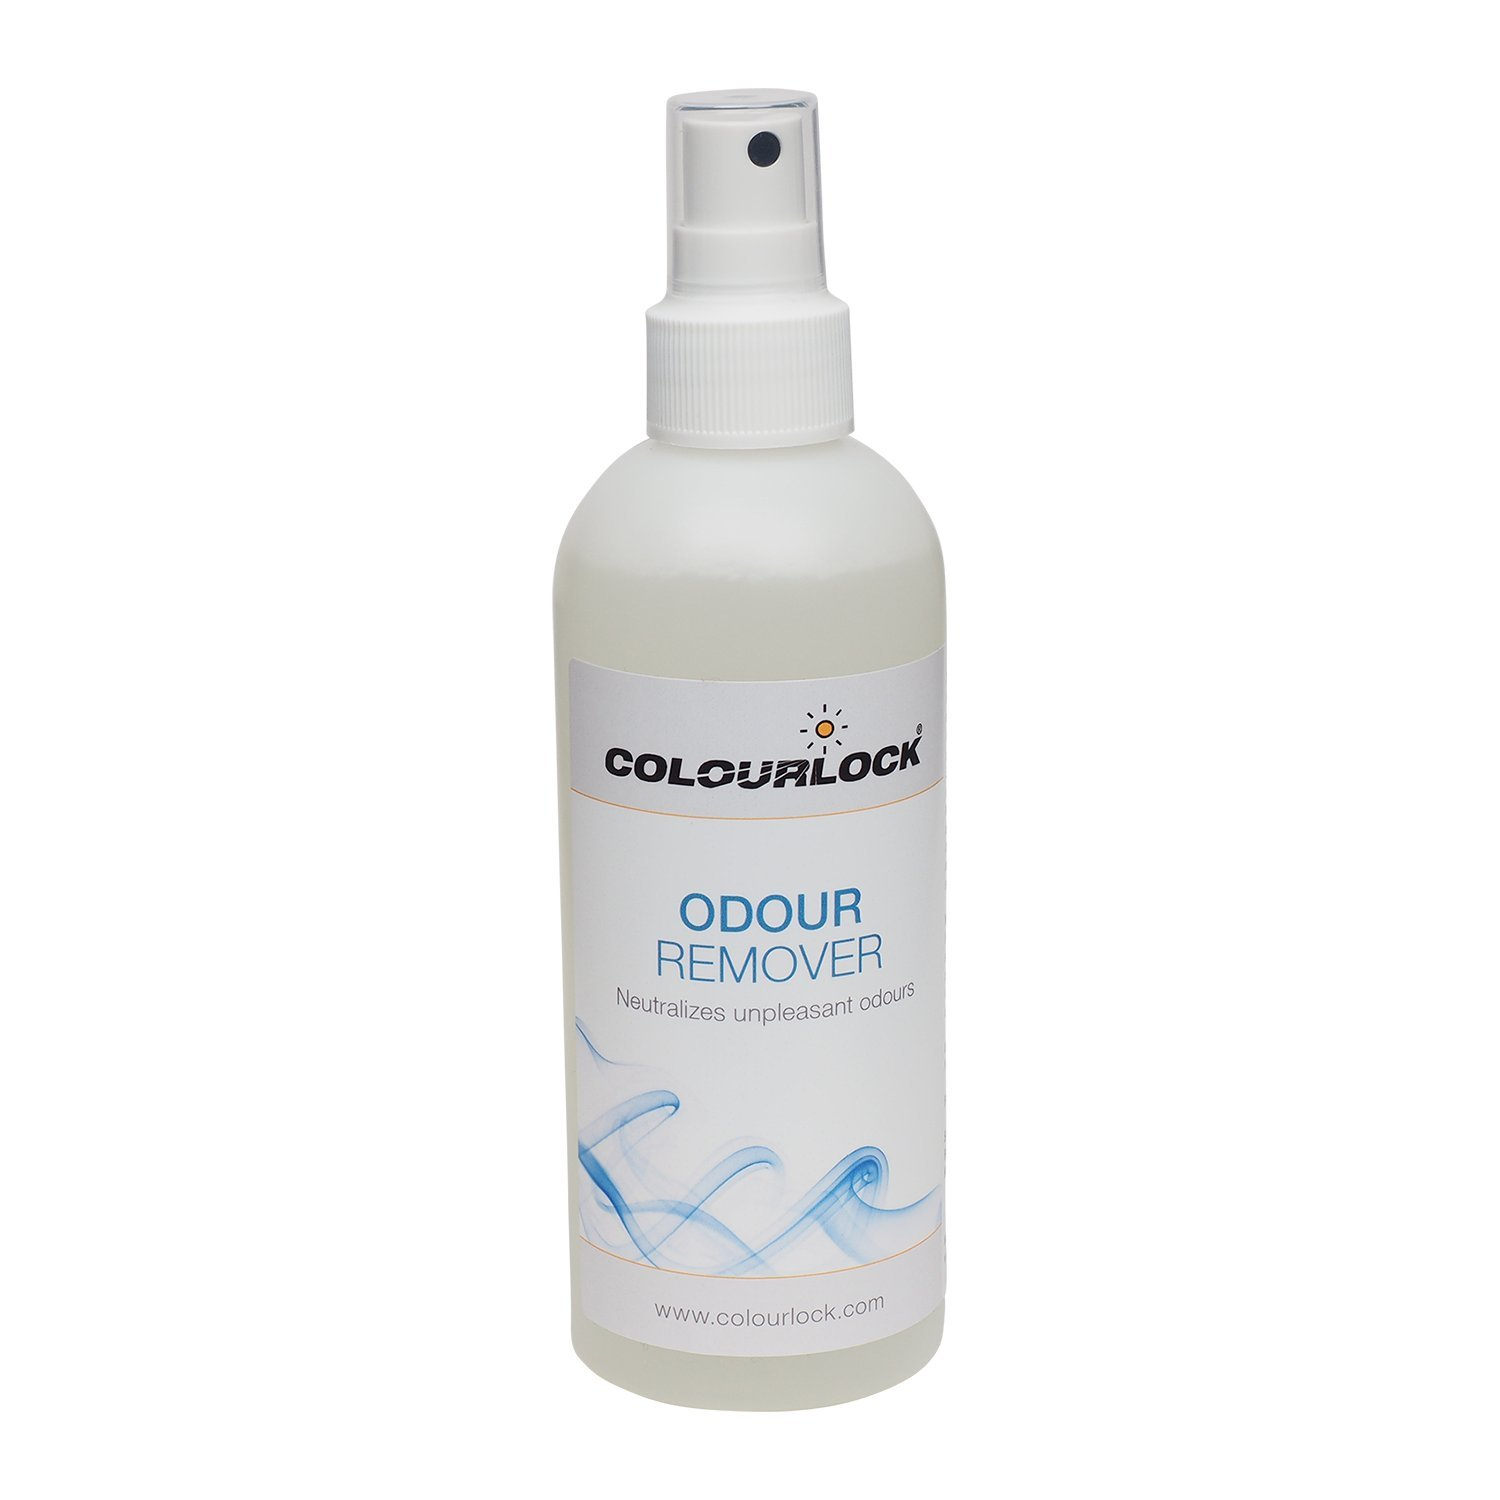 COLOURLOCK Odour Remover Spray for leather and textiles to remove the smell of mold, smoke, urine and other unpleasant odors from car interiors, furniture, clothing, carpets, rugs, etc - 8.45fl oz